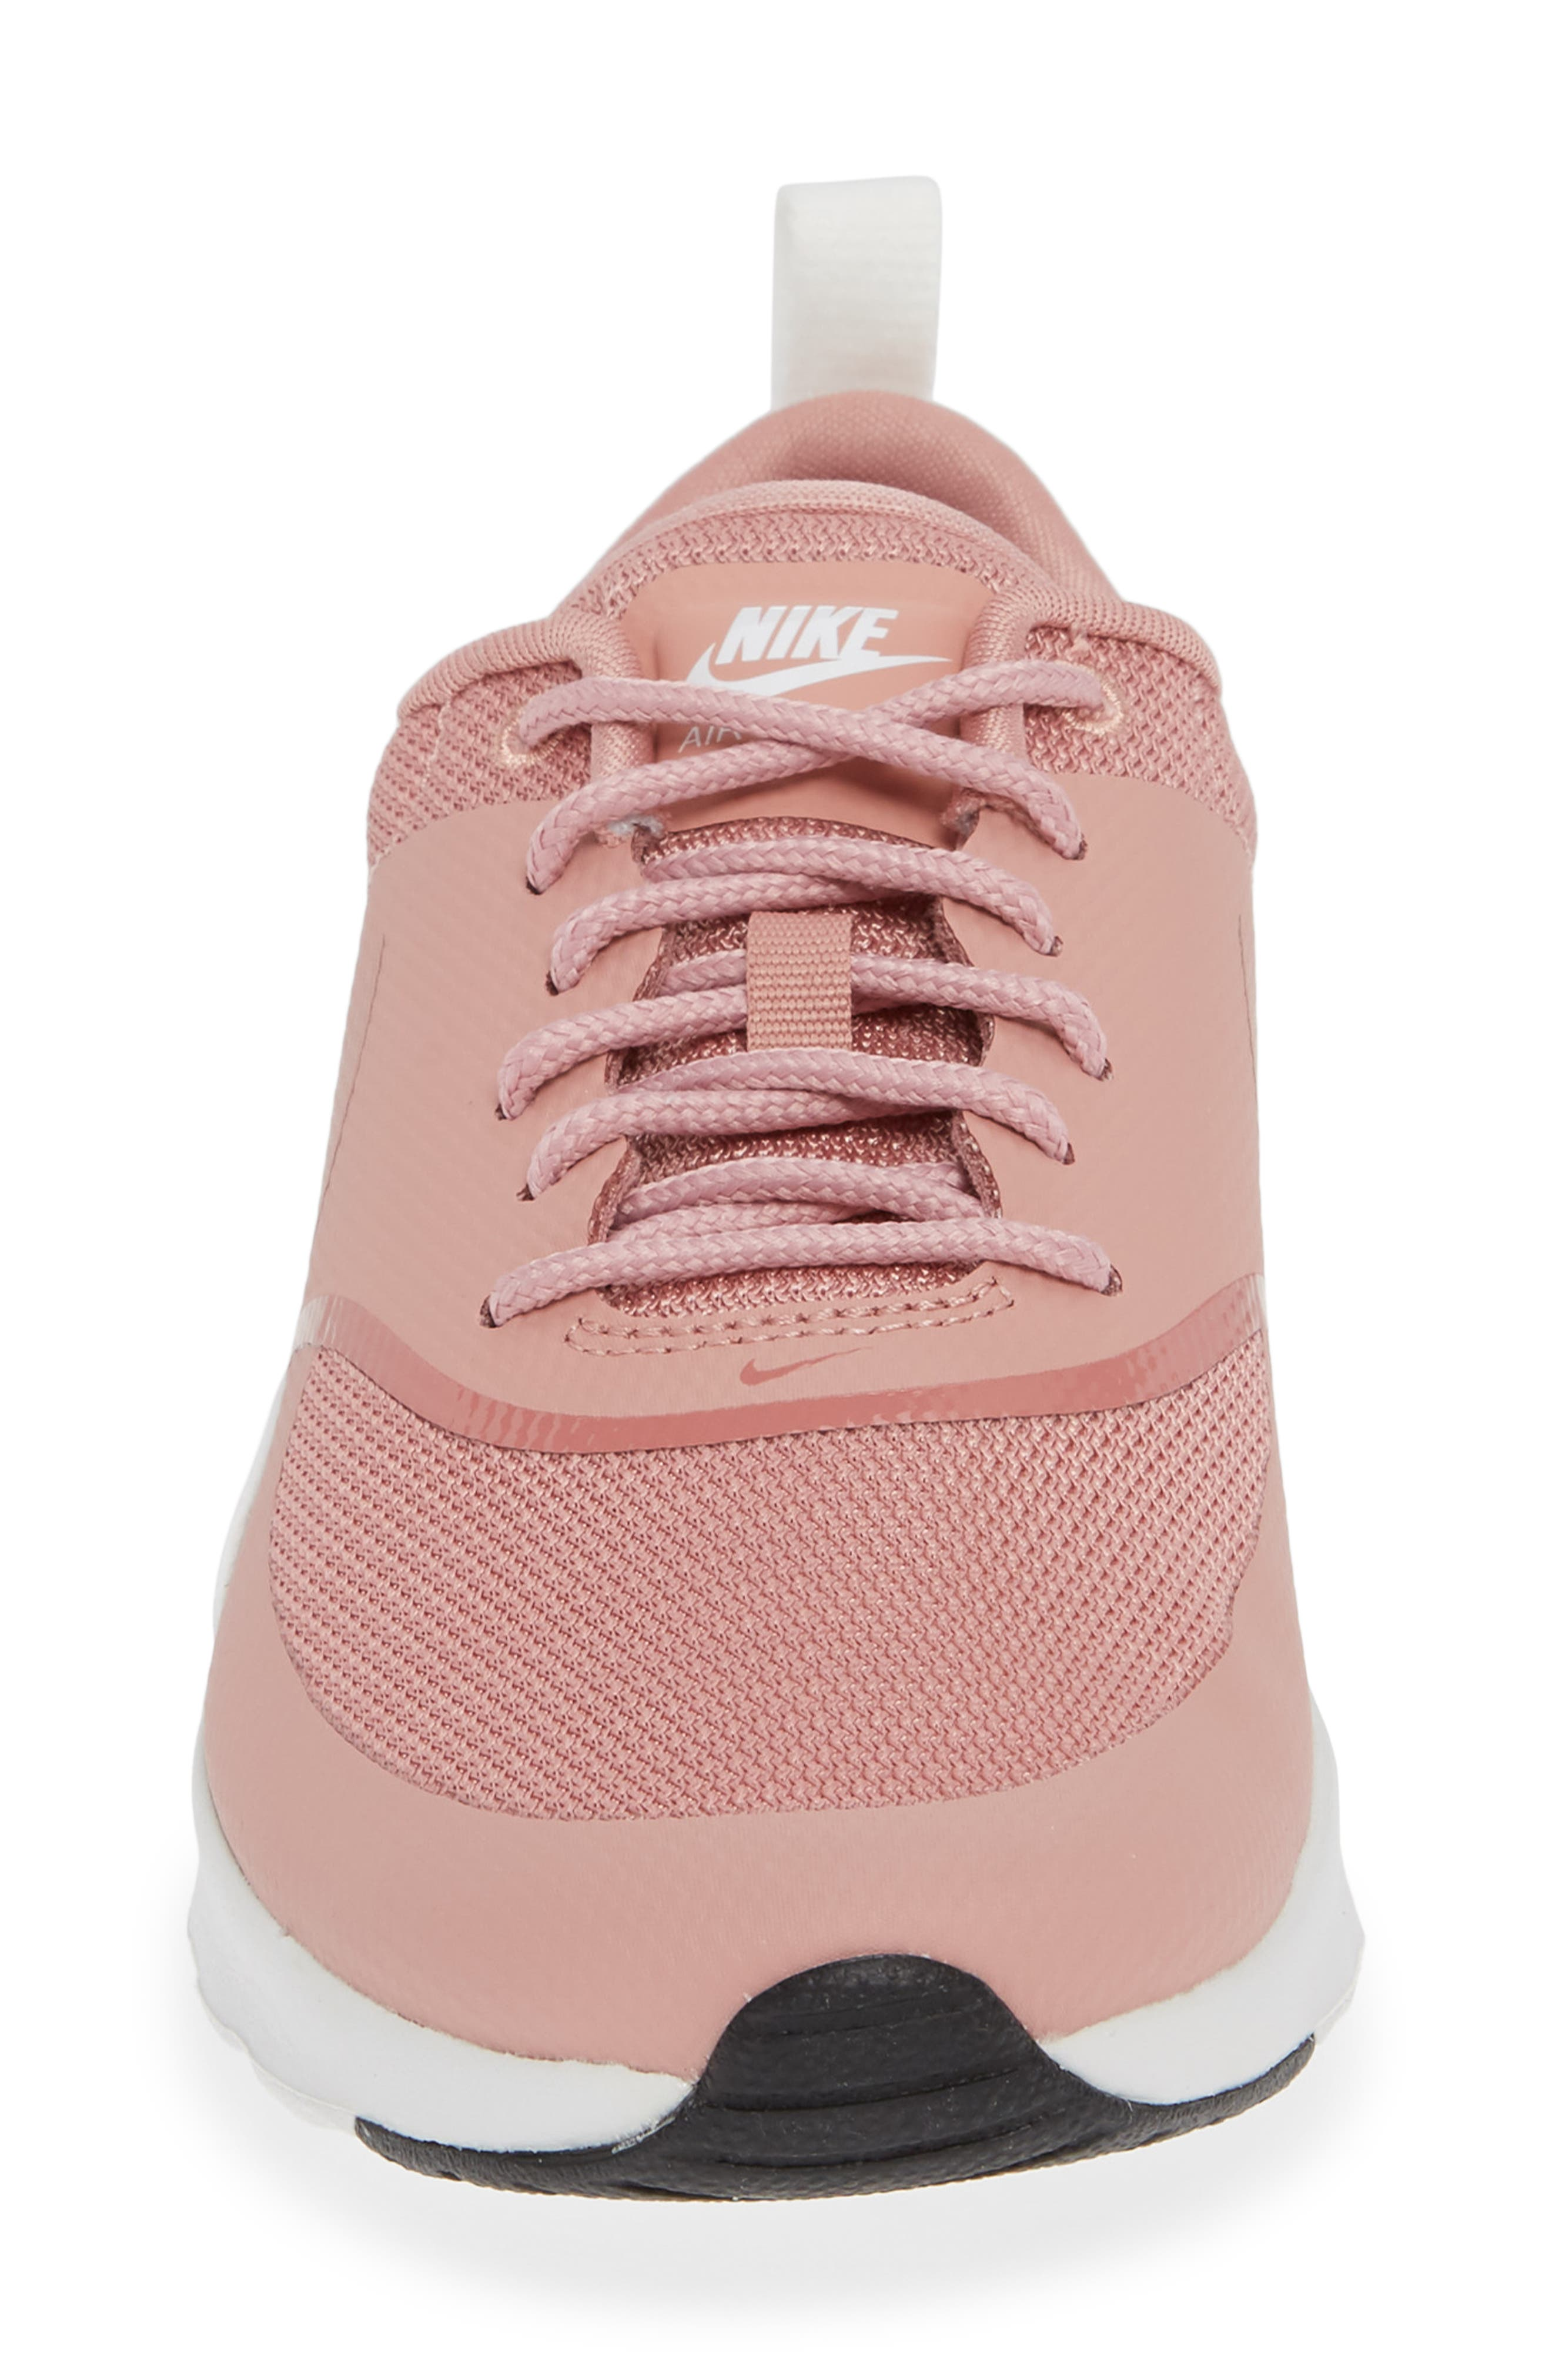 Air Max Thea Sneaker,                             Alternate thumbnail 4, color,                             RUST PINK/ WHITE/ BLACK